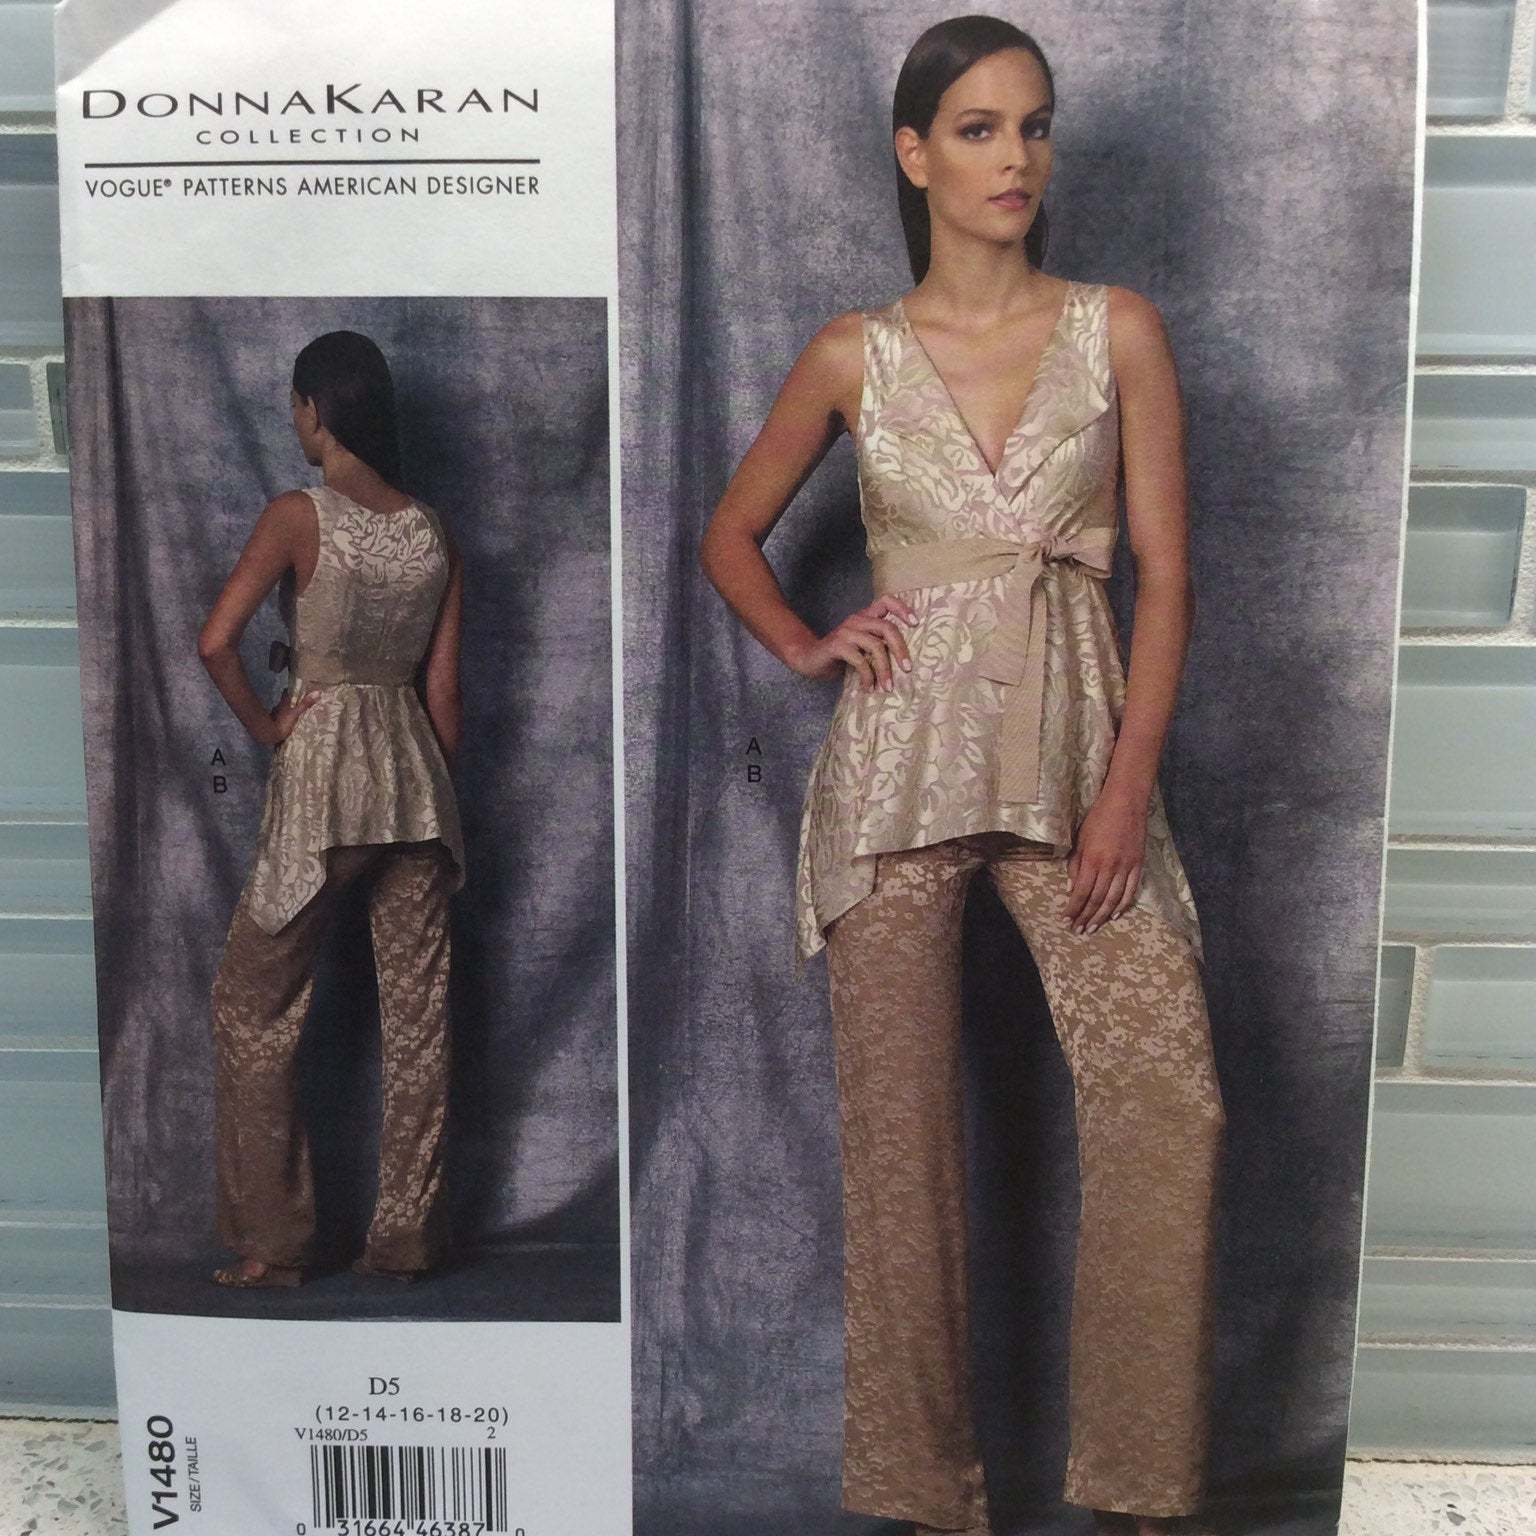 Vogue Sewing Pattern DKNY Donna Karan V1480 D5 12 14 16 18 20  Top and Pants